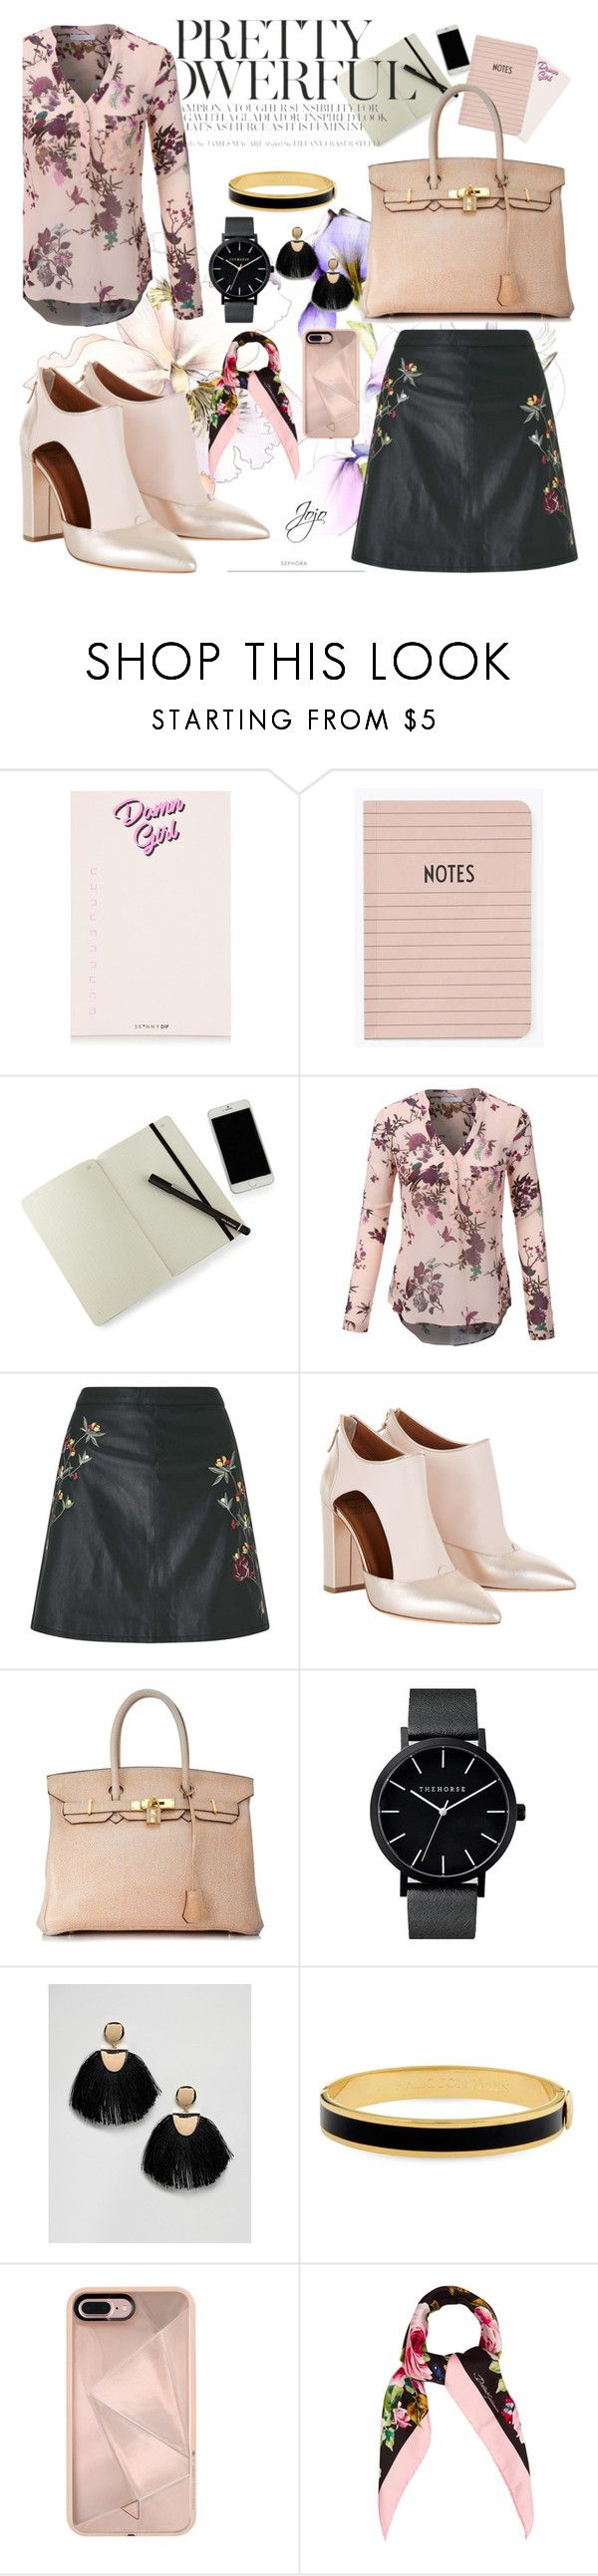 """""""#PolyPresents: New Year's Resolutions"""" by jrpsketch on Polyvore featuring Debbie Bliss, Moleskine, LE3NO, Miss Selfridge, Hermès, ASOS, Halcyon Days, Rebecca Minkoff, Dolce&Gabbana and contestentry"""